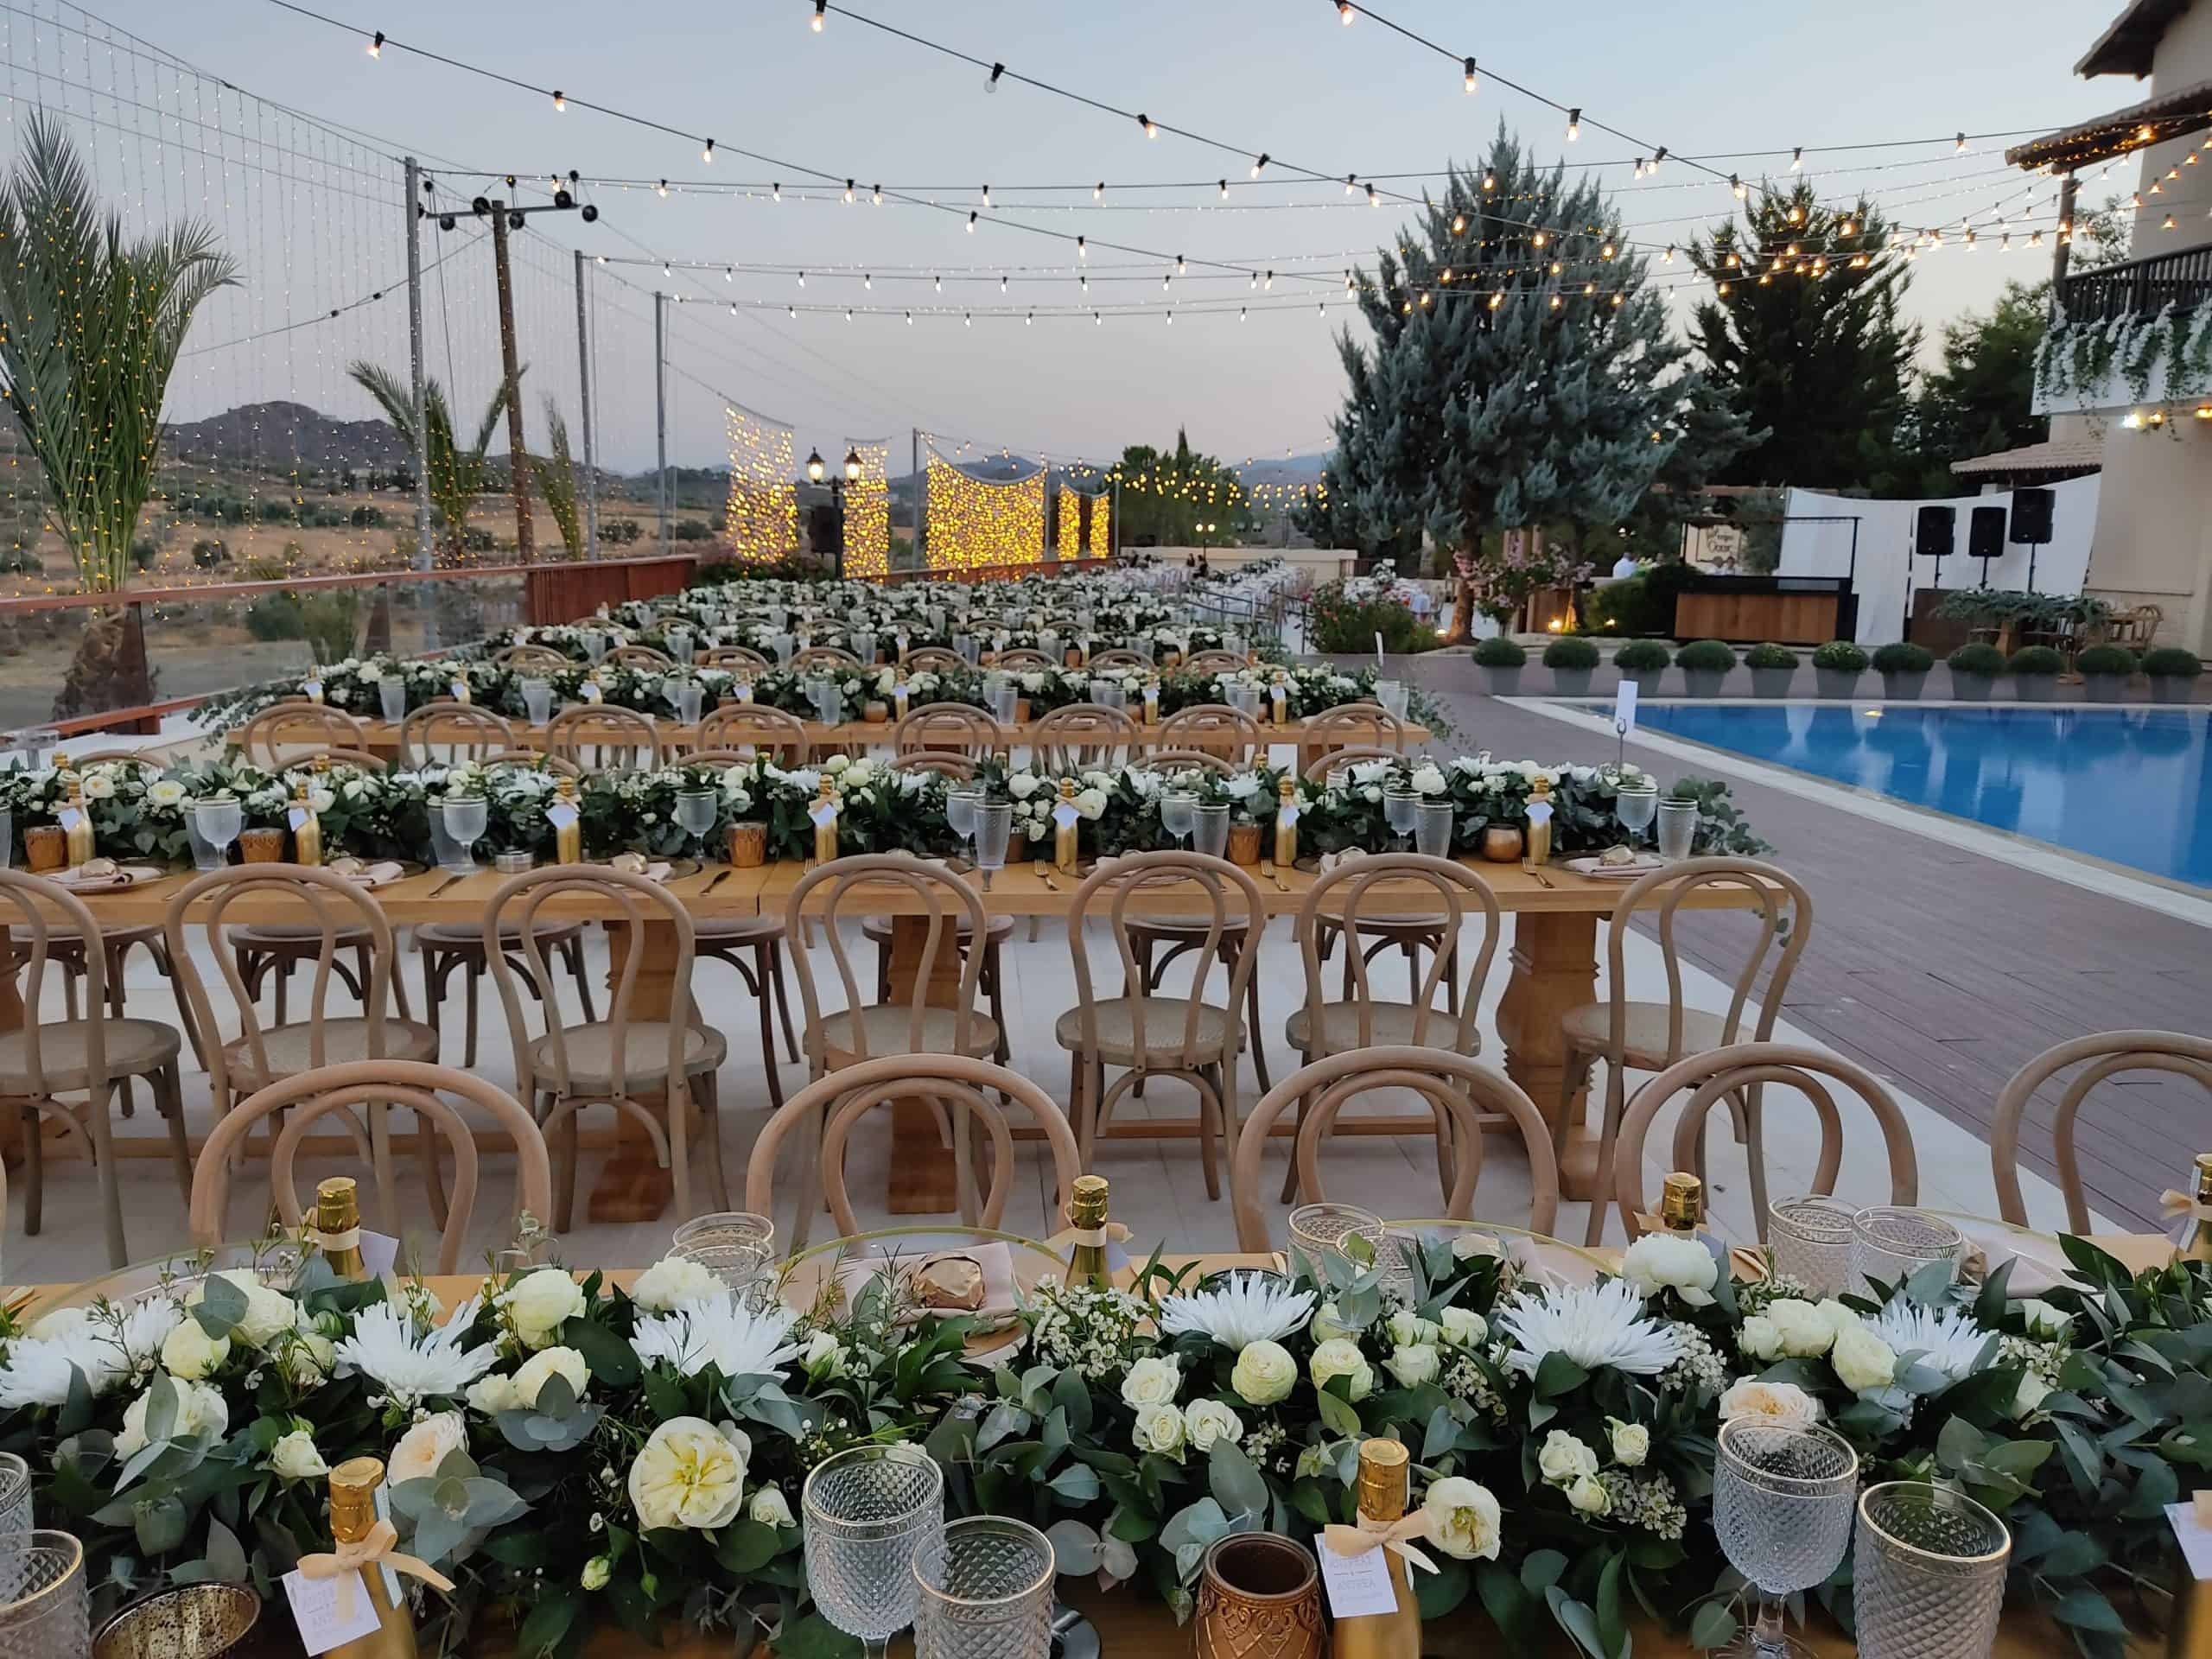 Ktima Oasis Cyprus - Weddings - Baptisms - Corporate Events - PoolOutdoor2 1 scaled 1